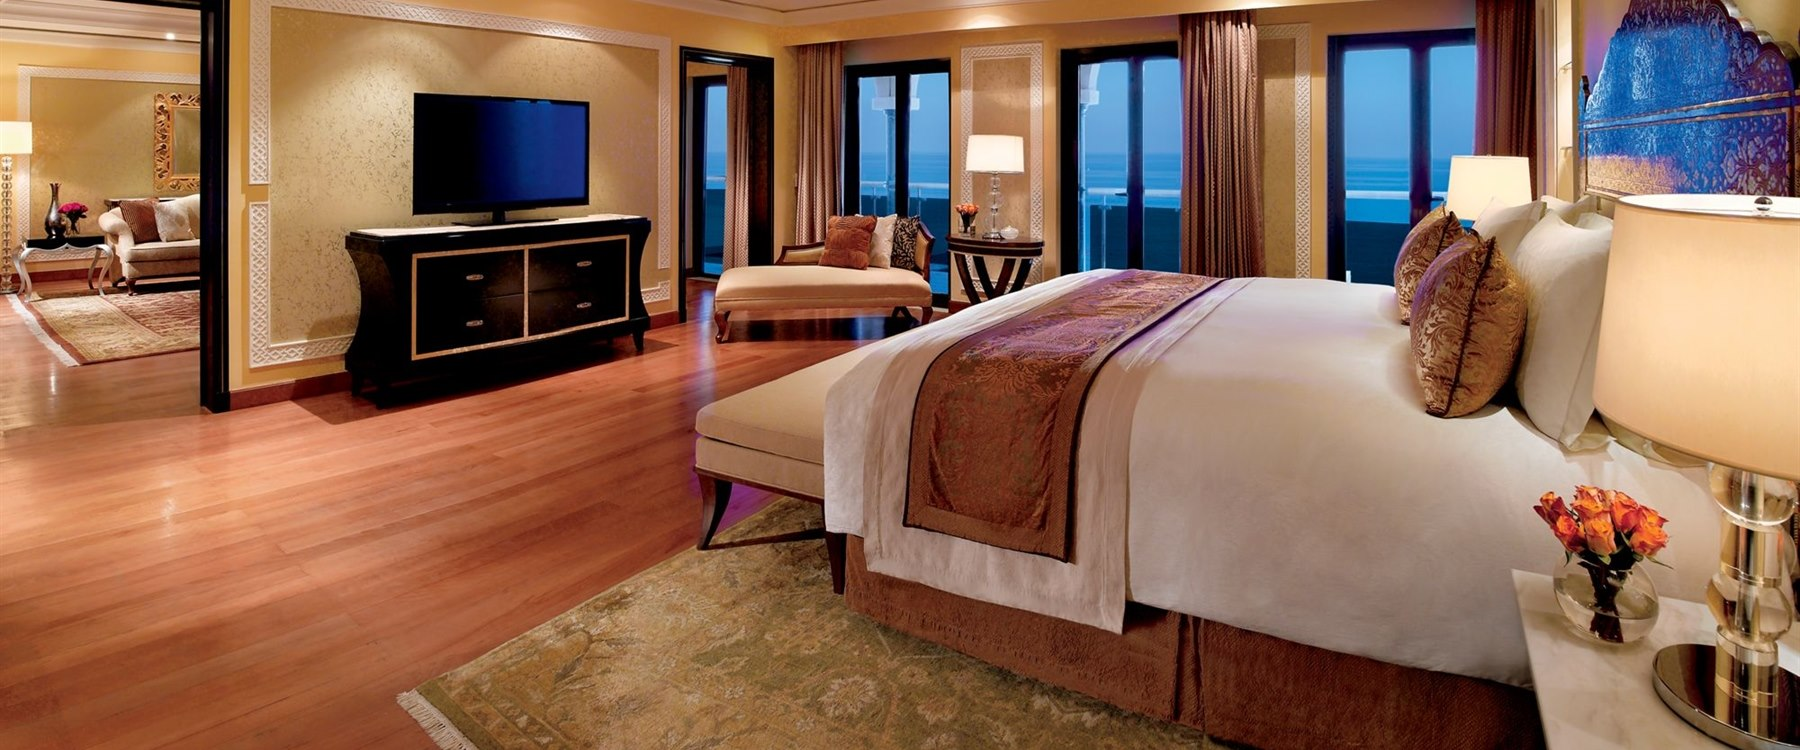 Presidential Mountain View Suite at Al Bustan Palace, A Ritz-Carlton Hotel, Muscat